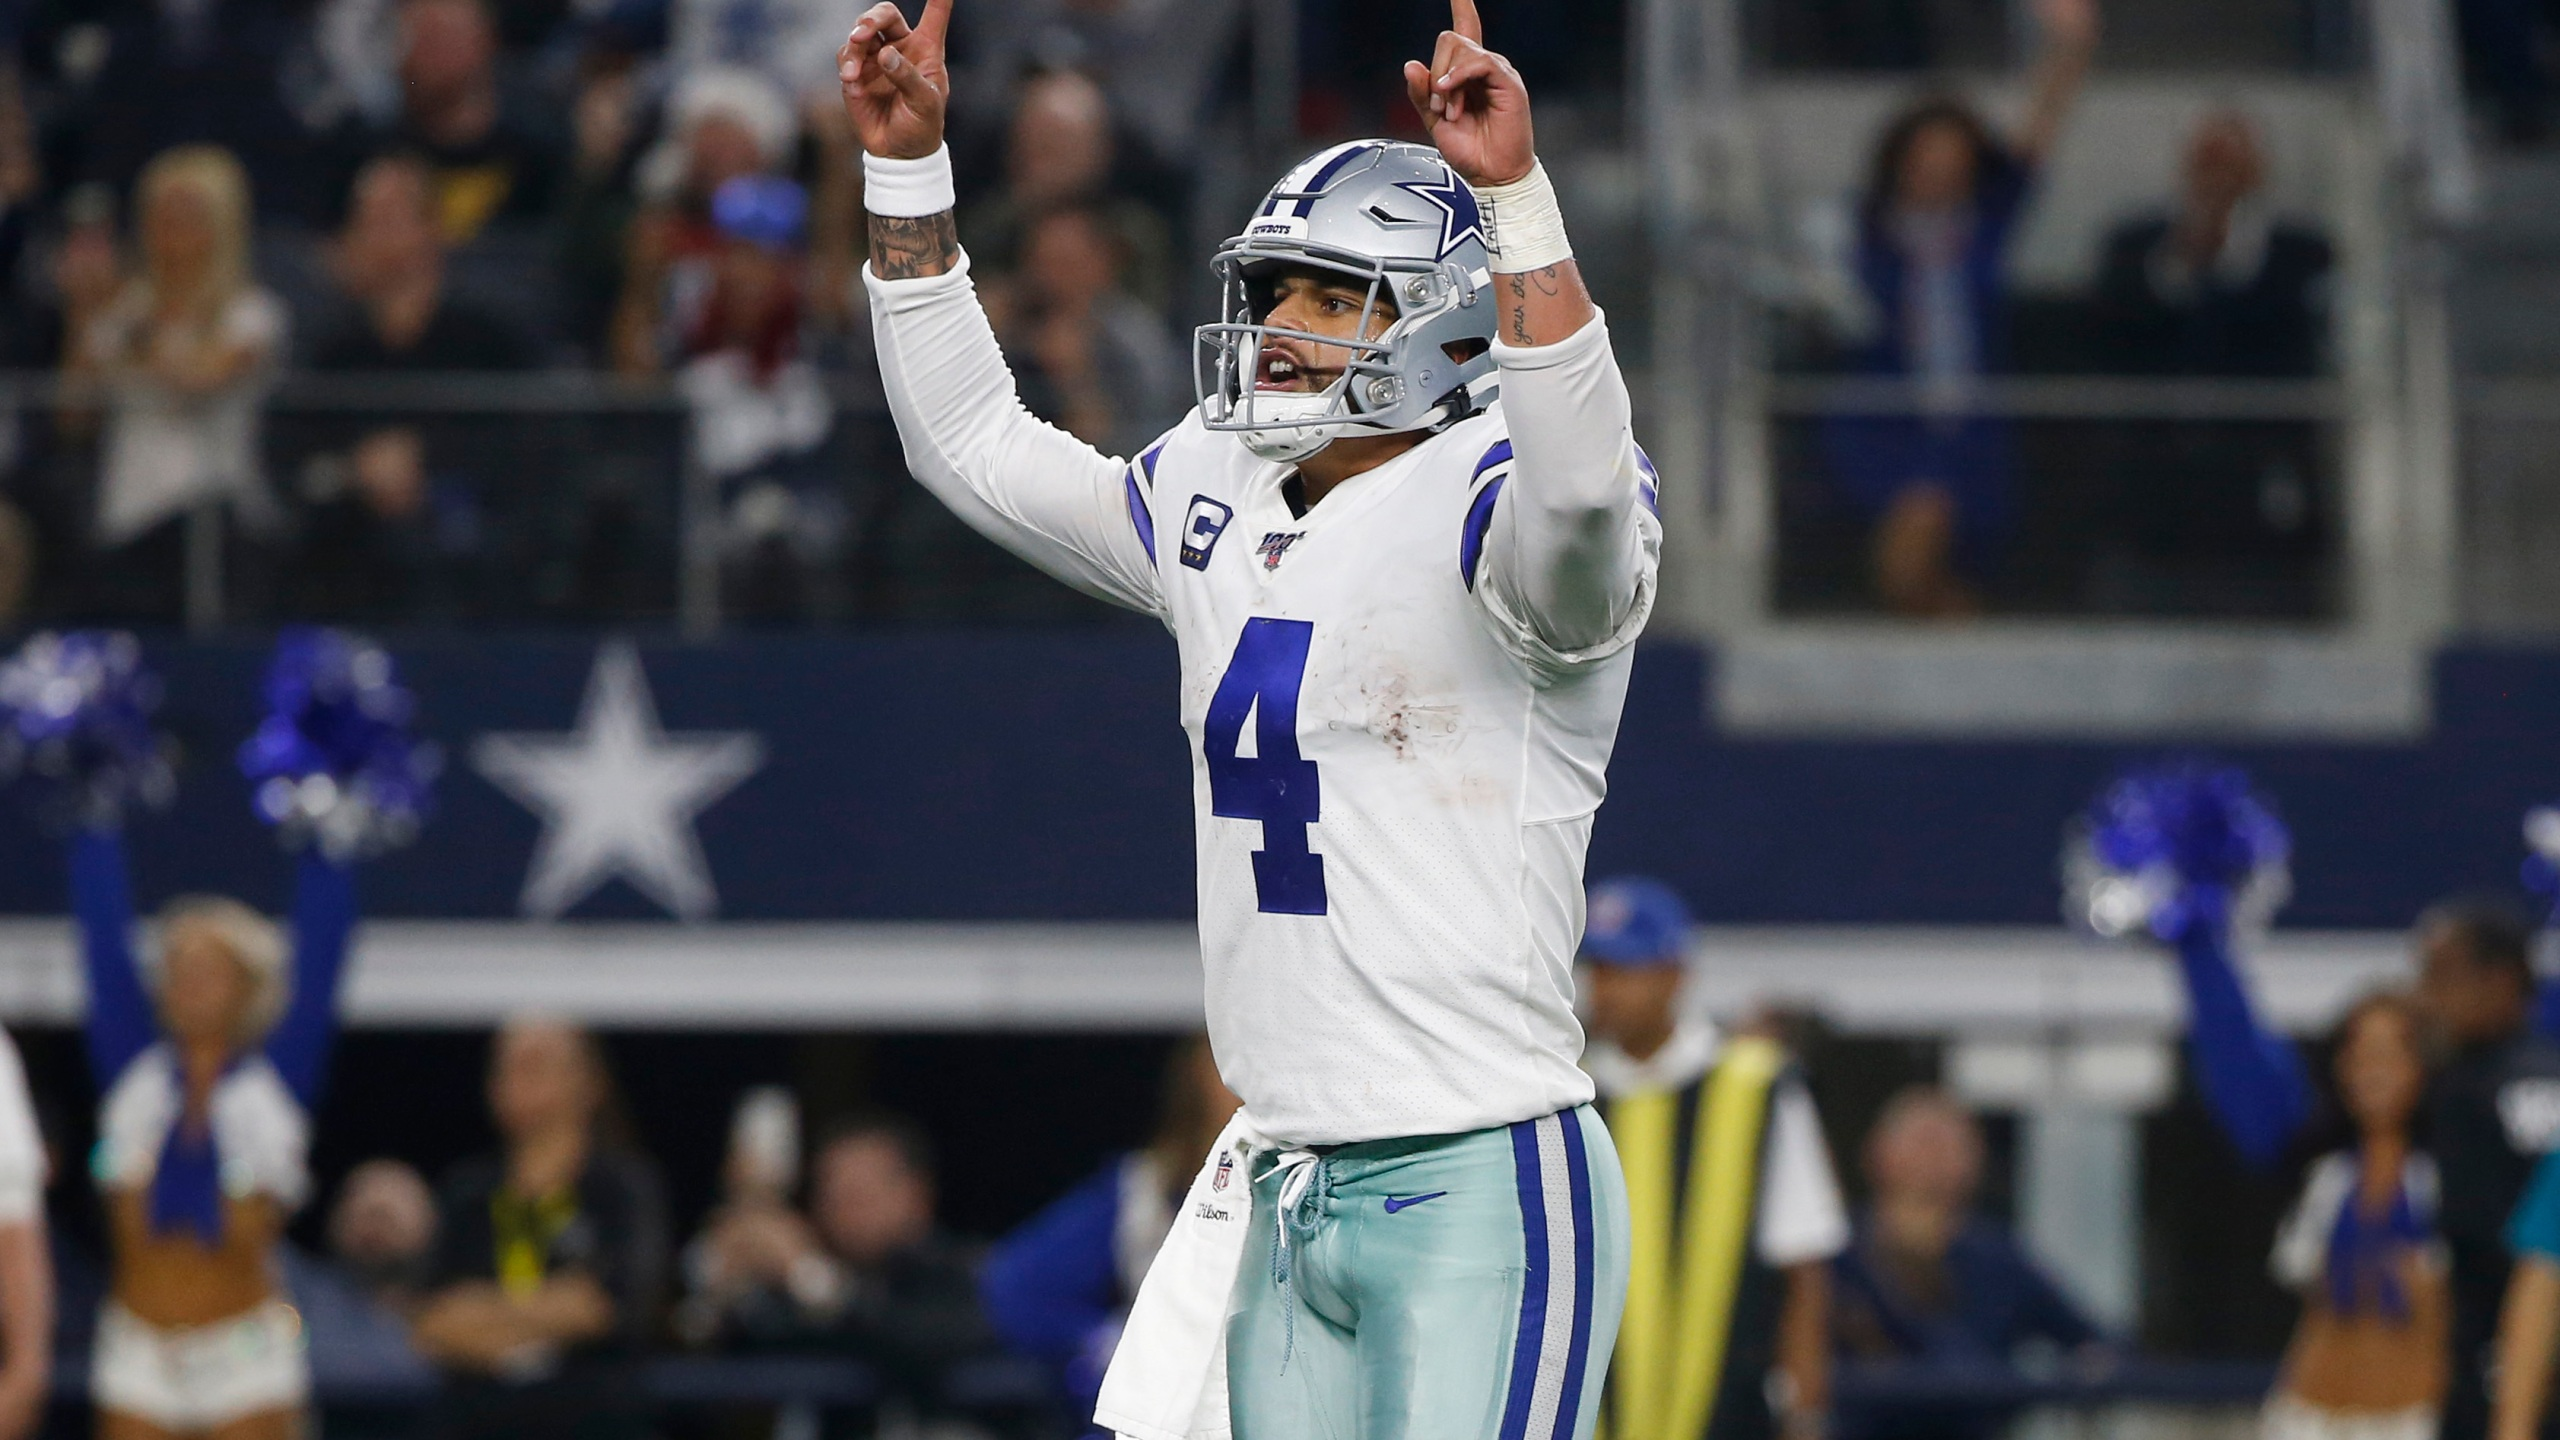 Dallas Cowboys Dak Prescott celebrates